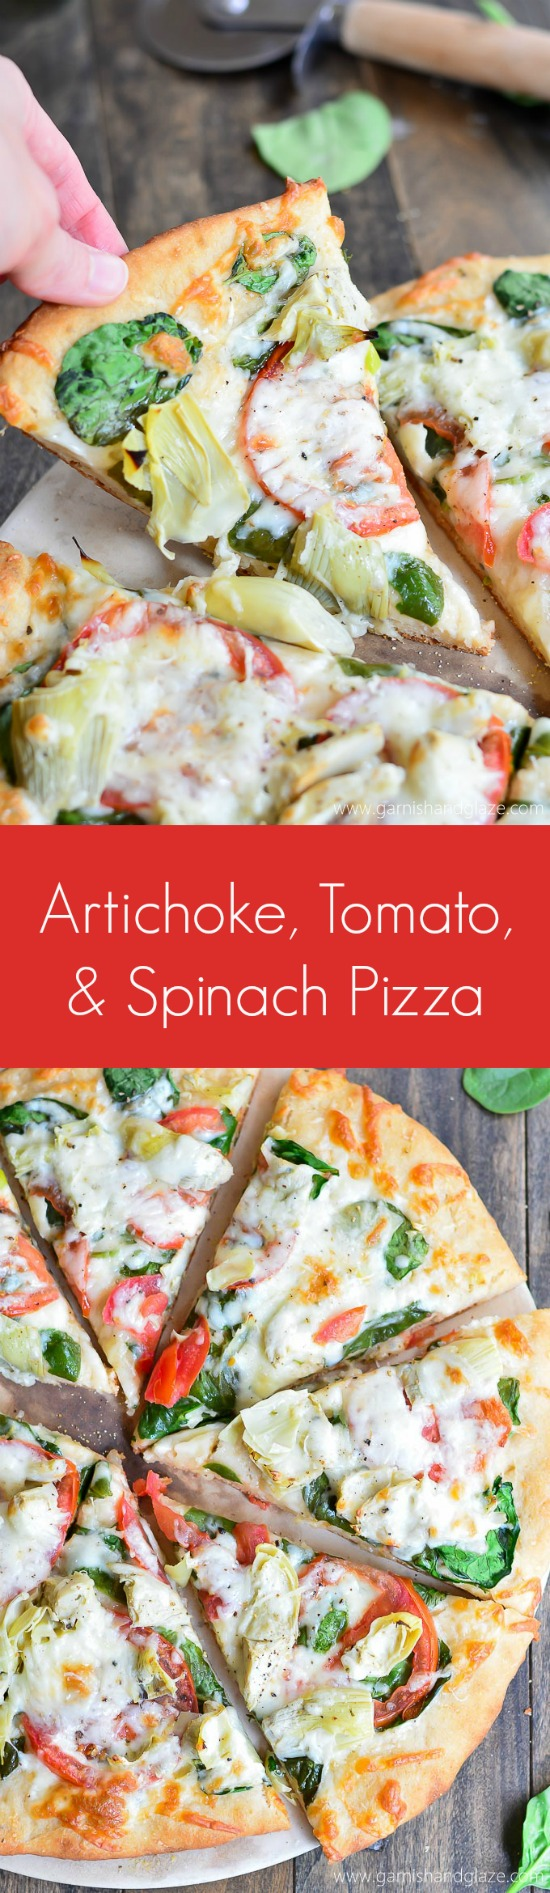 Go meatless with this veggie topped Artichoke, Tomato, and Spinach Pizza made on a No Knead, No Rise Pizza Dough crust.